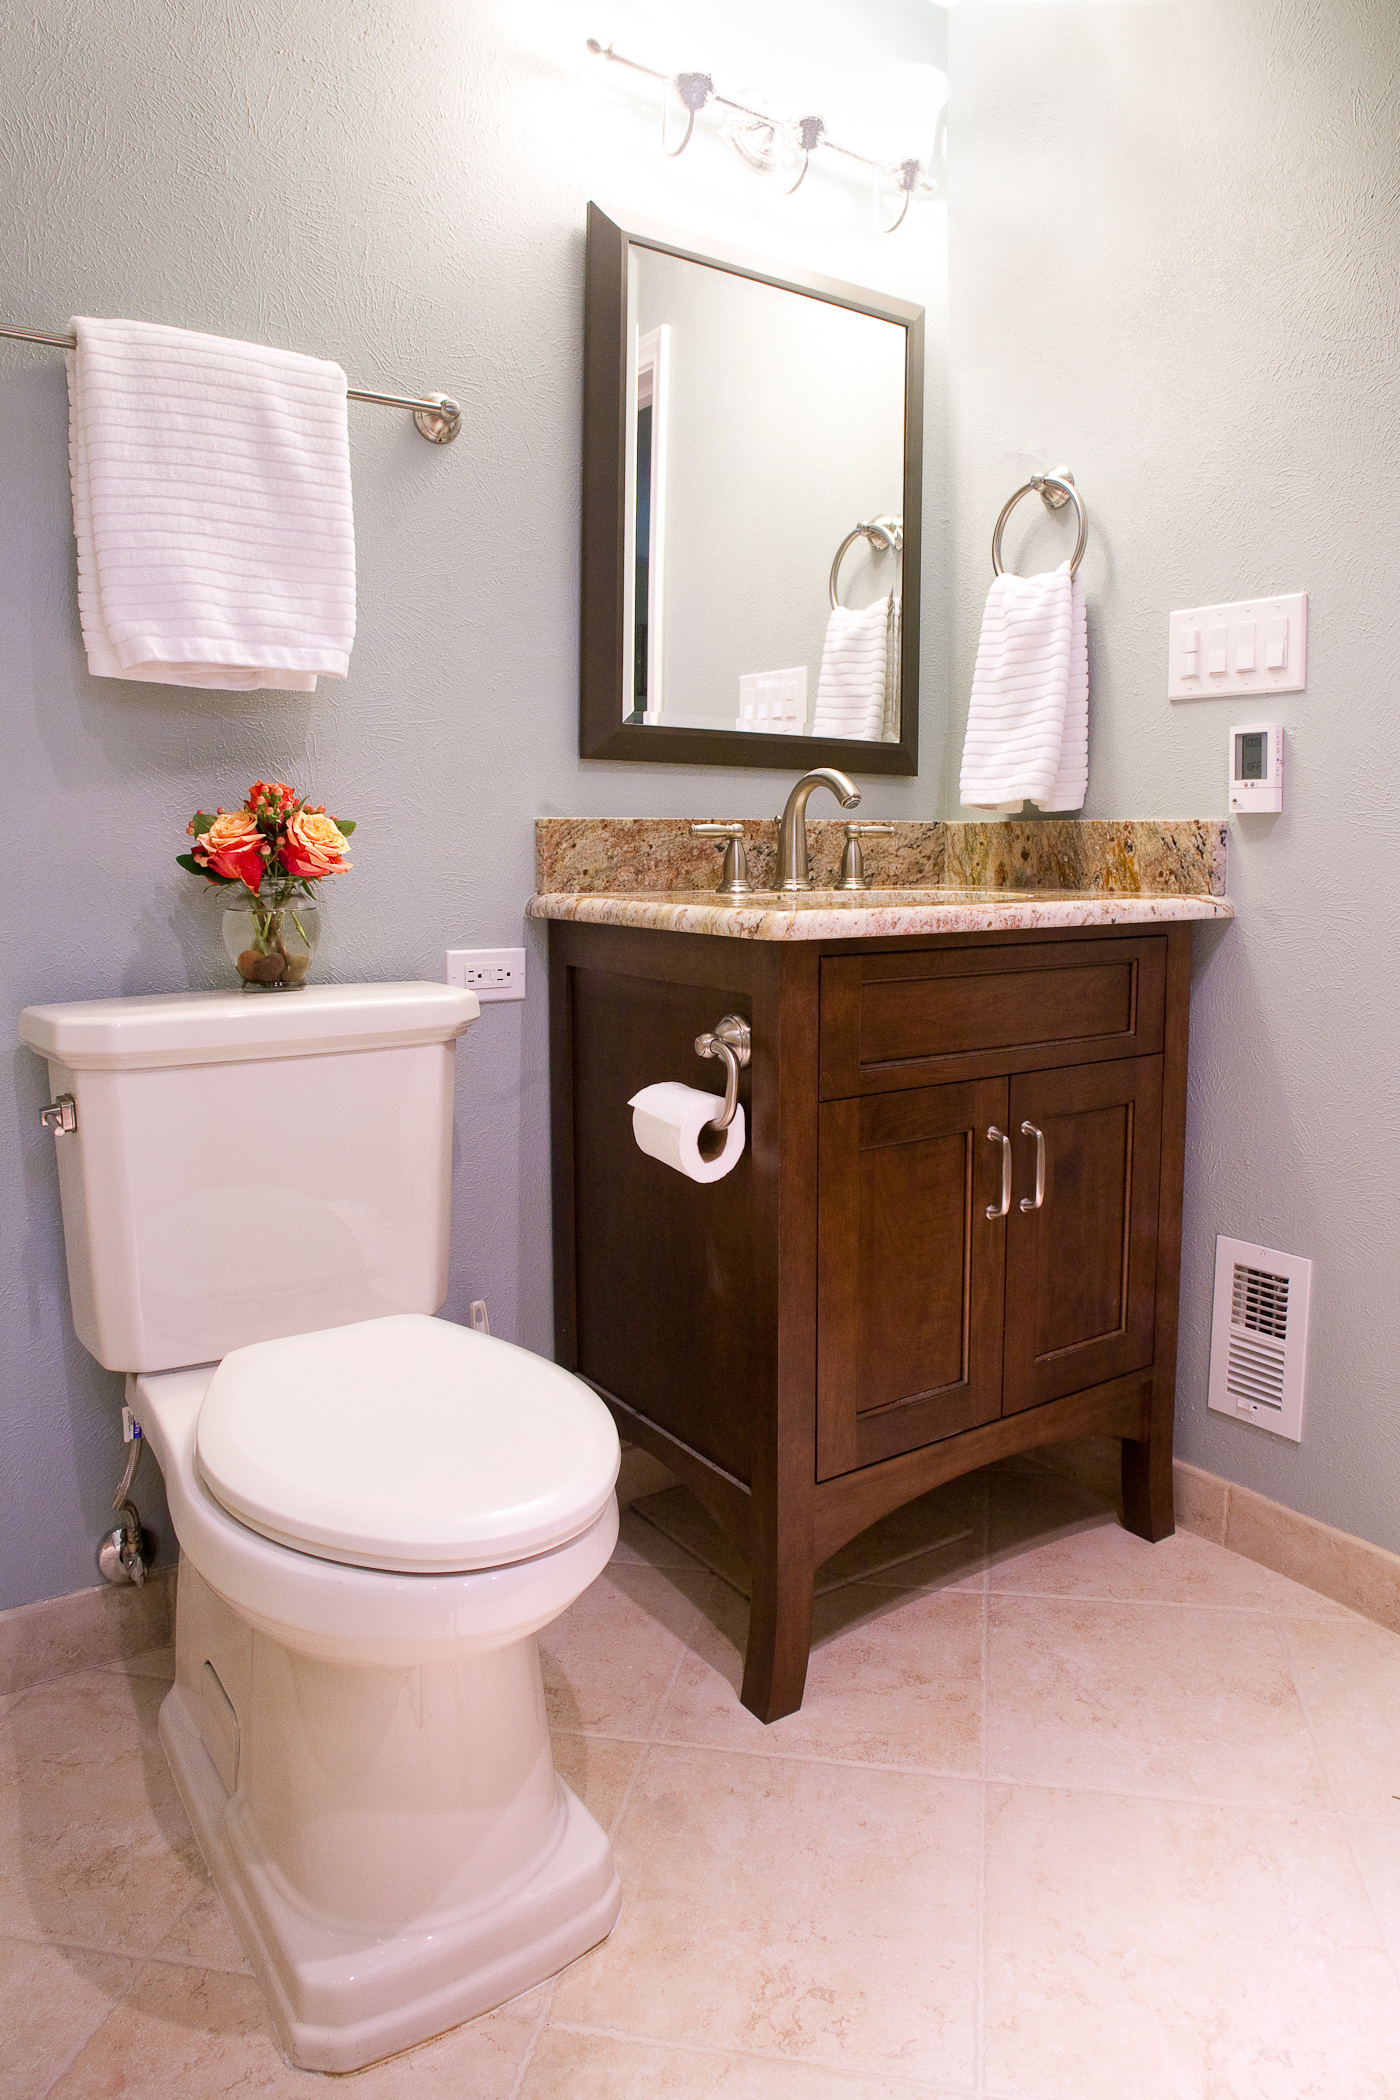 Mirrored makeup vanity rustic bathroom cabinets with bath for Bathroom cabinets online